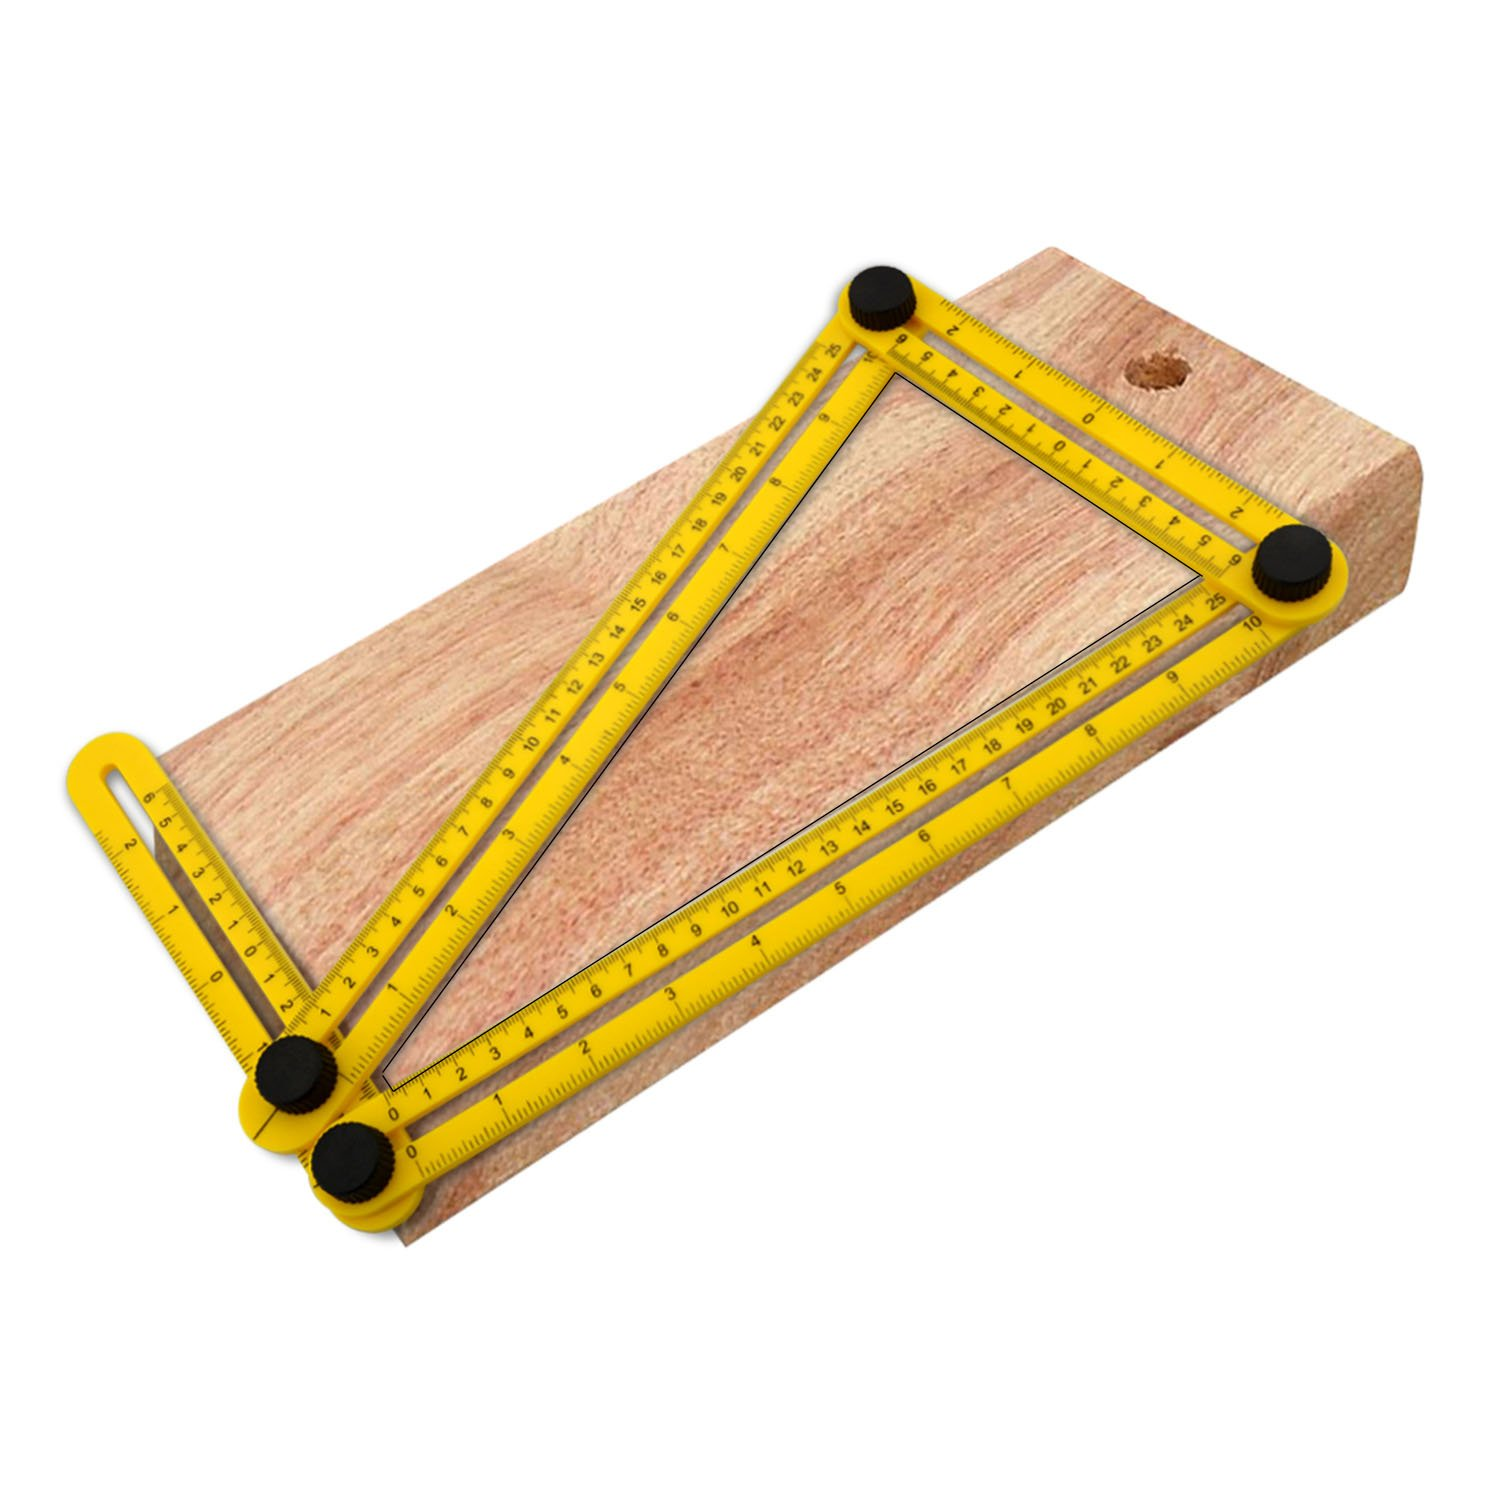 Aboat Angle-izer Template Tool, Multi-Angle Ruler Template Measures All Angles and Forms for Handymen, Builders, Craftsmen